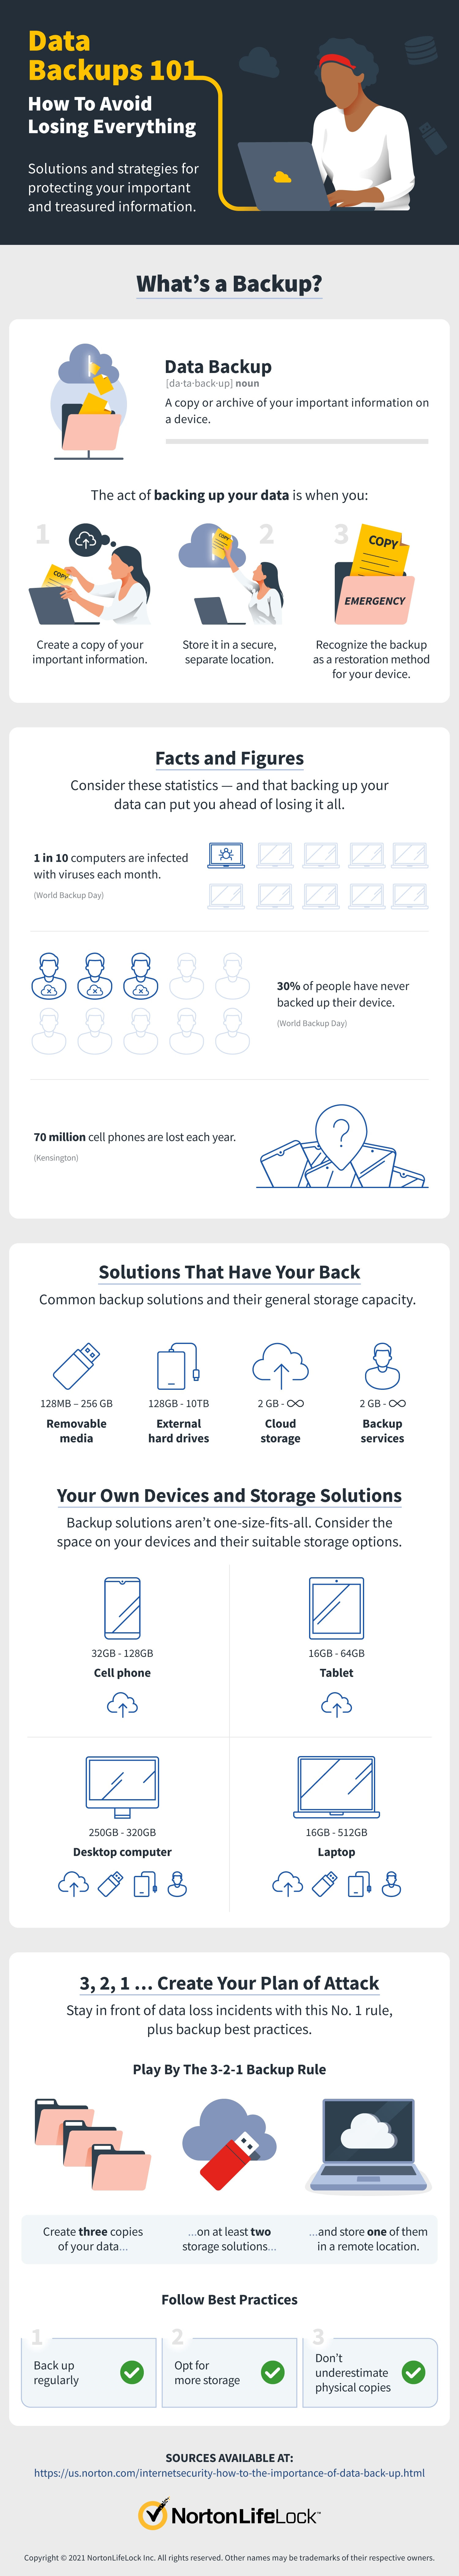 an infographic summing up data backup solutions and storage options, plus data loss statistics